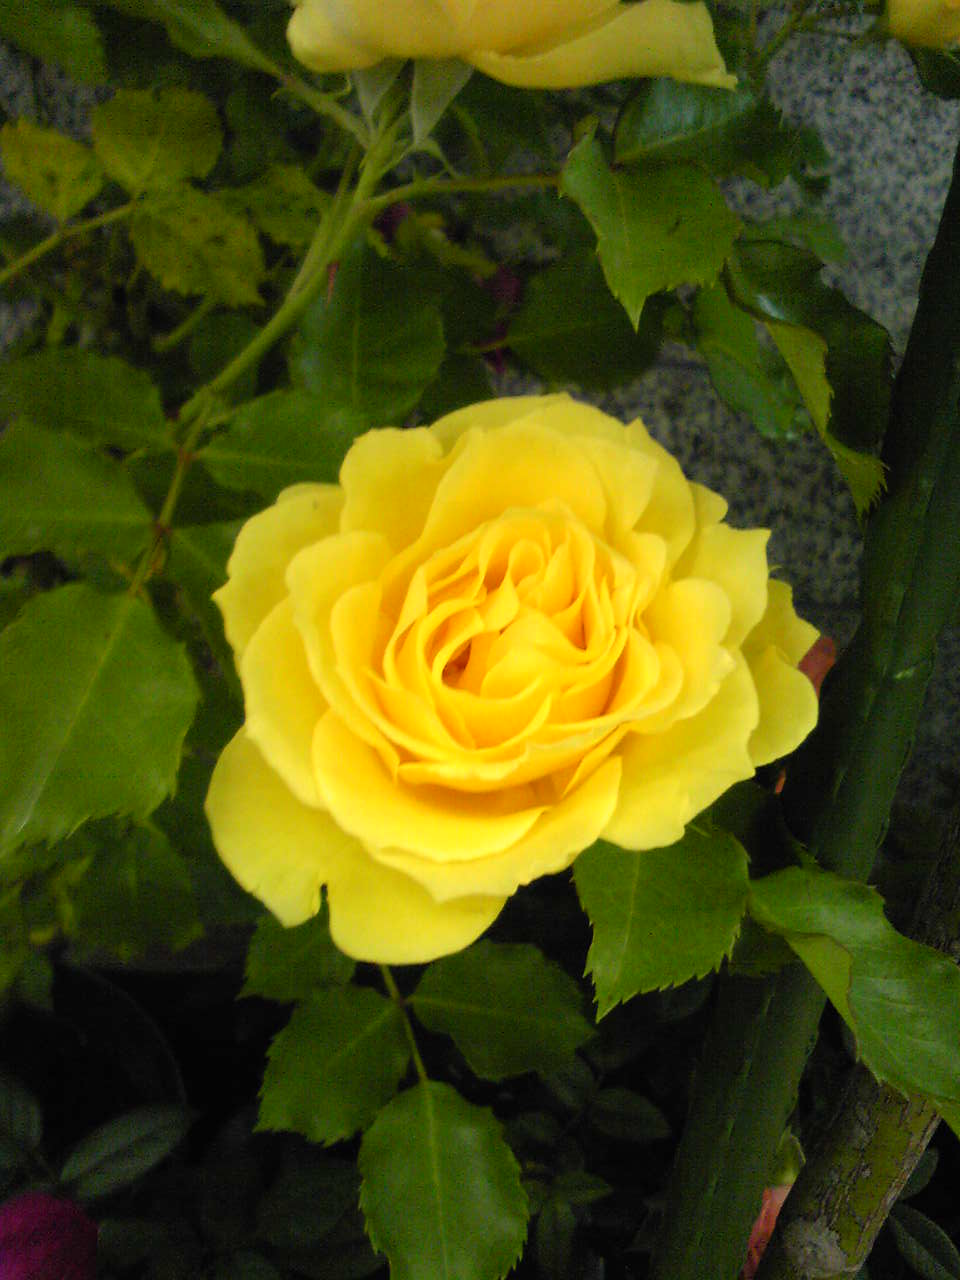 An yellow rose